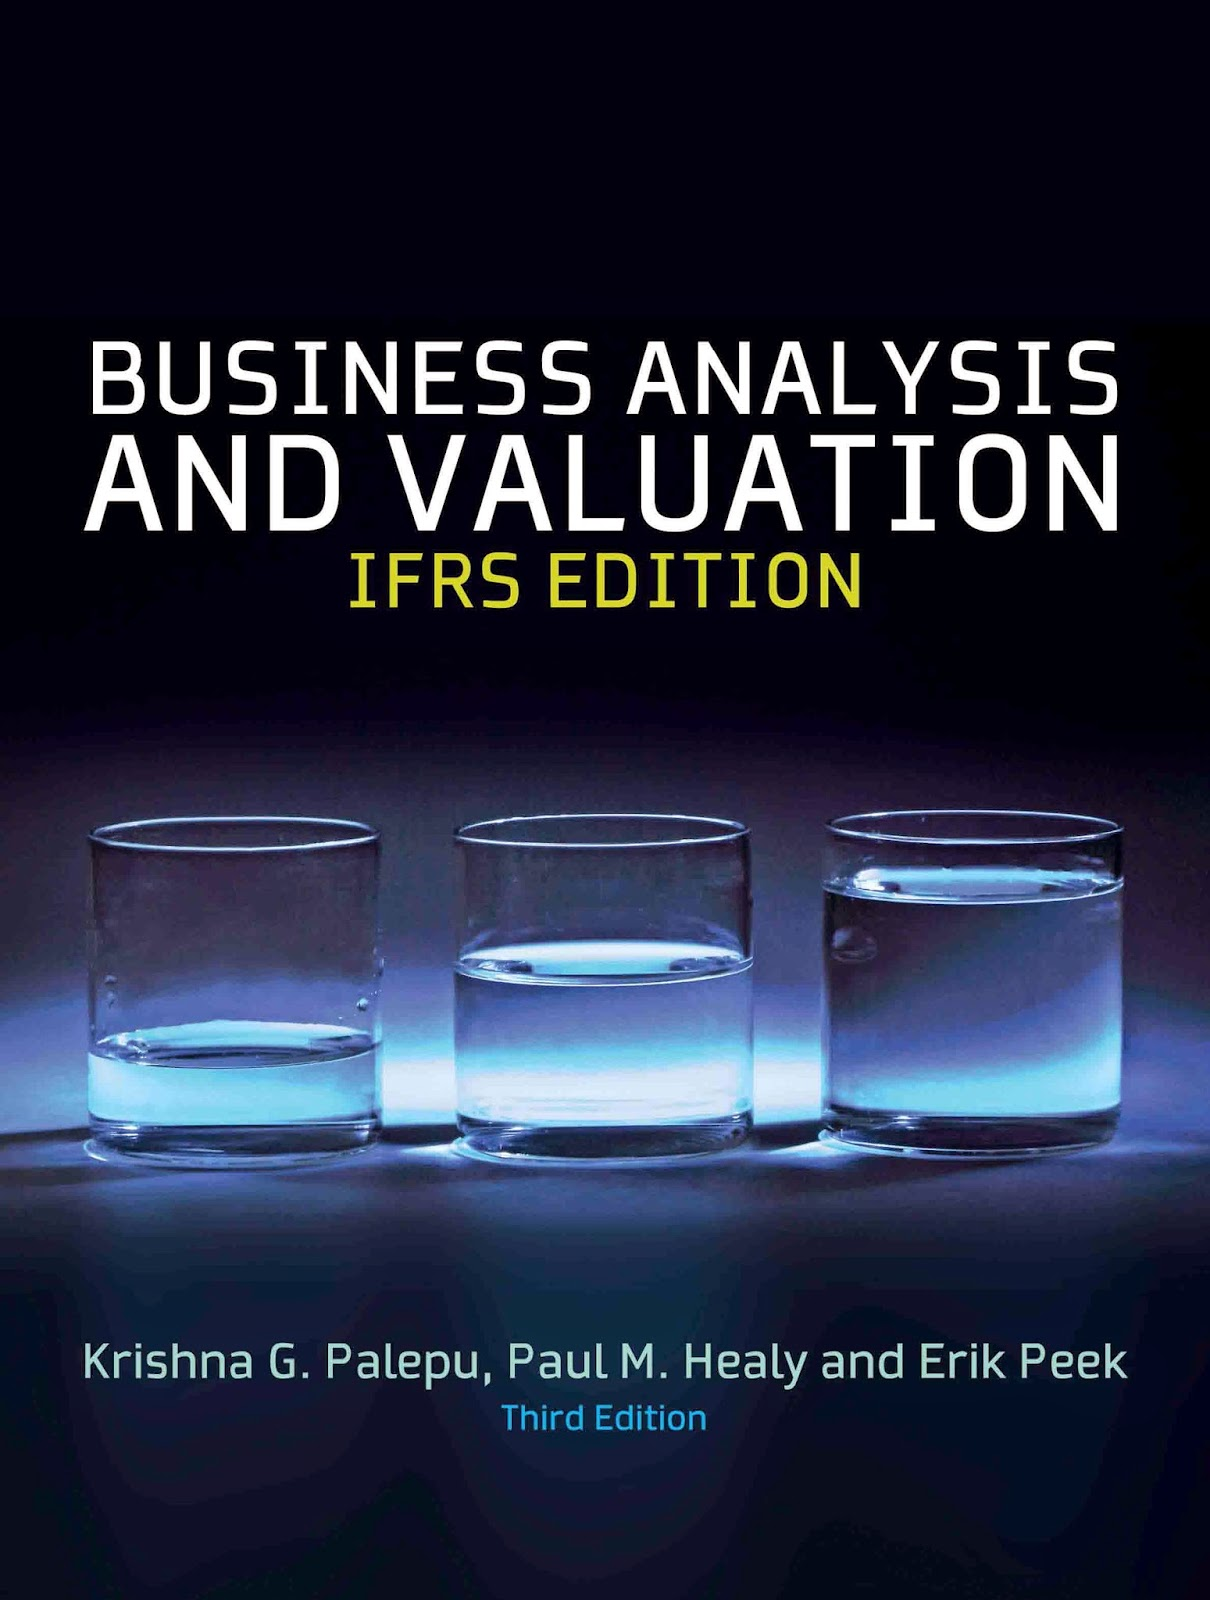 business valuation and financial analysis Valuation and financial analysis for startups from yonsei university the startup valuation and financial analysis specialization teaches two of the most often used methods to find the value.